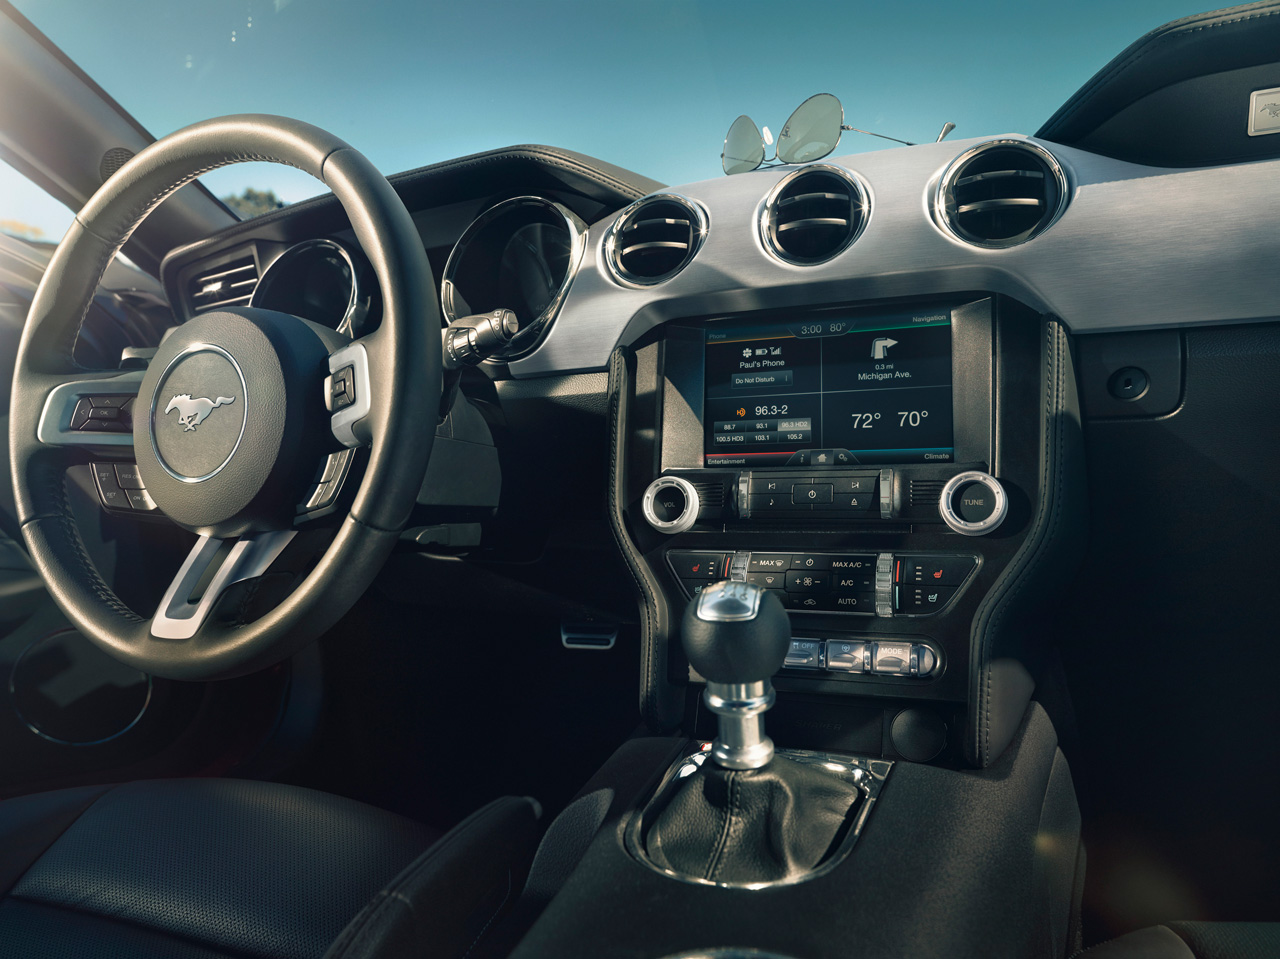 Ford Mustang 2015 interior